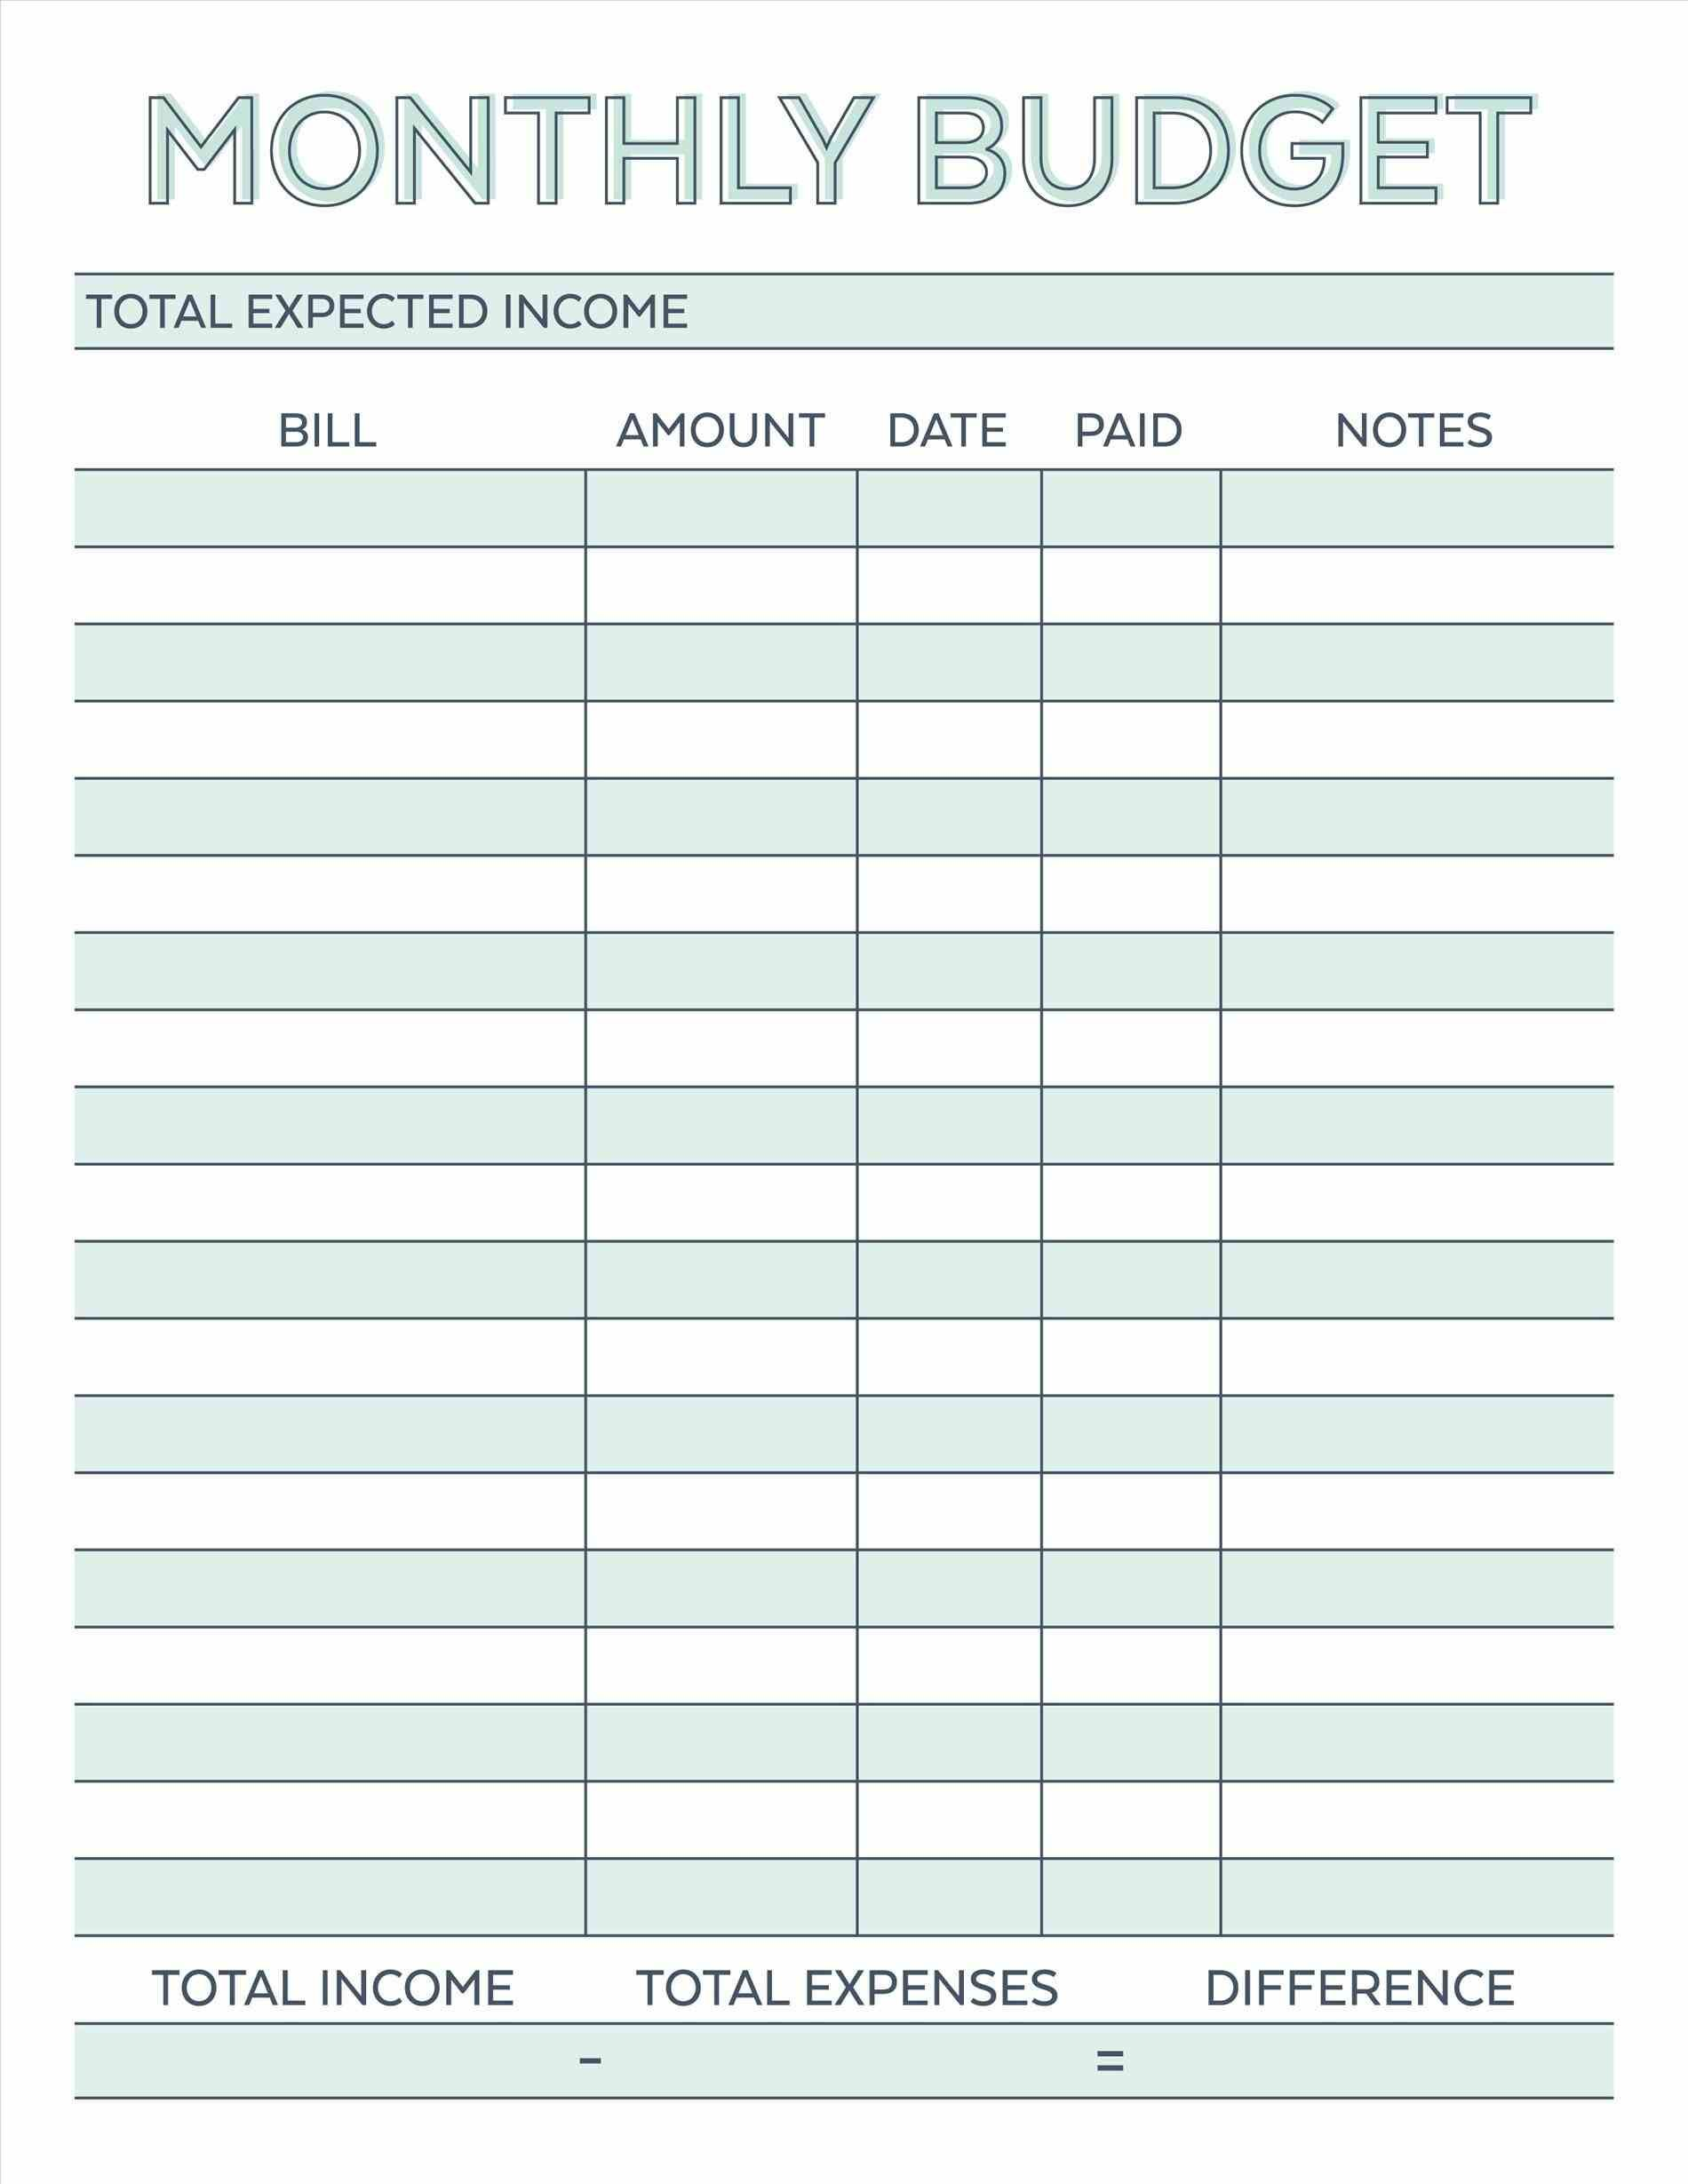 Budget planner planner worksheet monthly bills template for Monthly bill spreadsheet template free